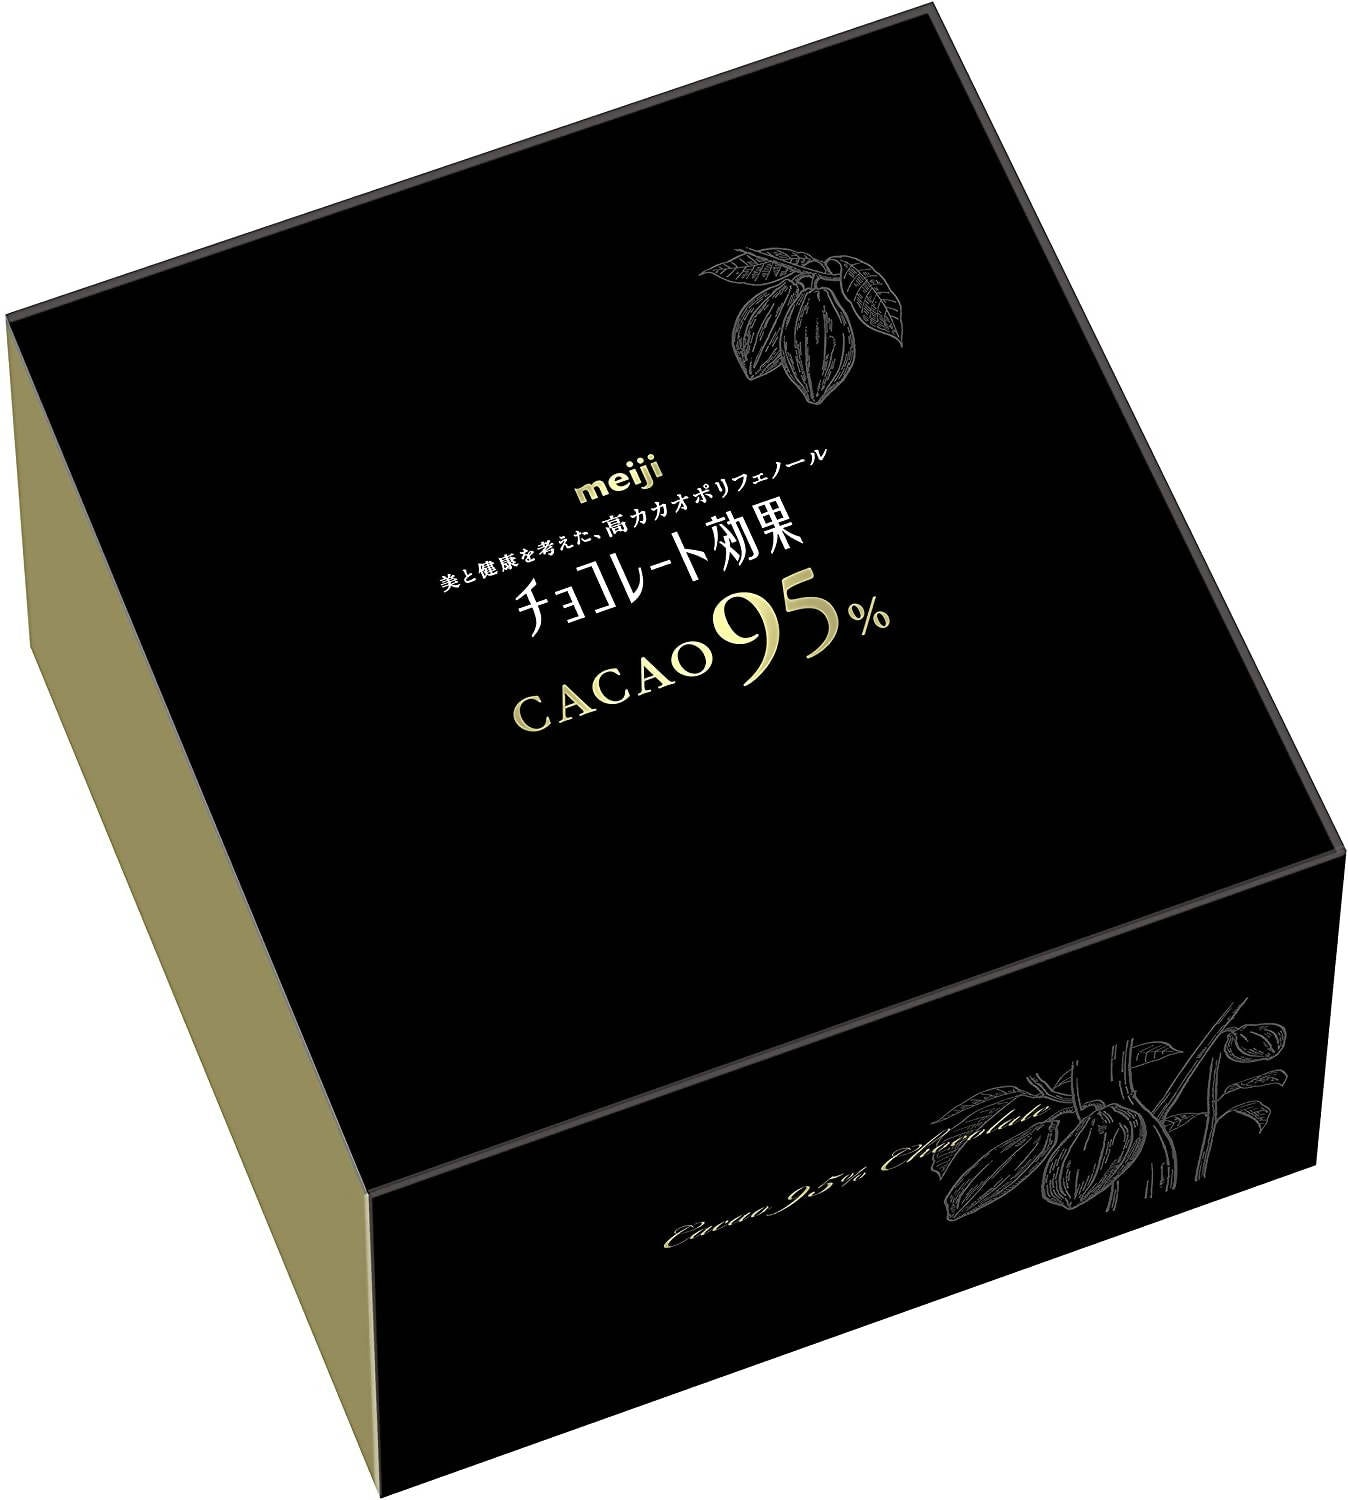 MEIJI Chocolate Effect Extra Dark 95% Cacao Value Pack – 800 g